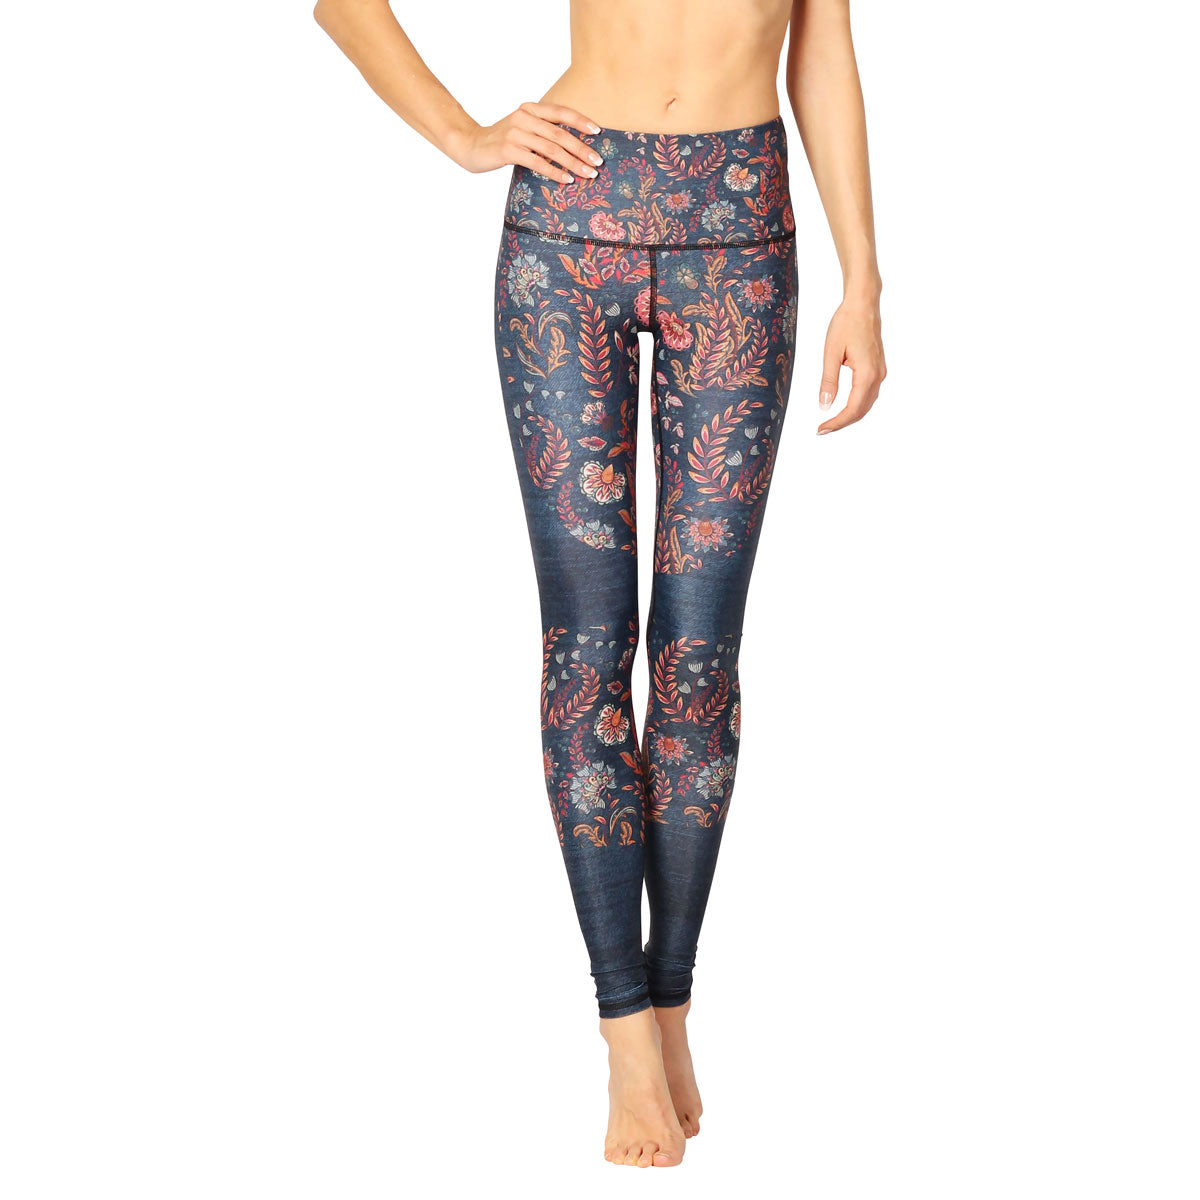 YOGA DEMOCRACY Festival Denim Eco Yoga Leggings